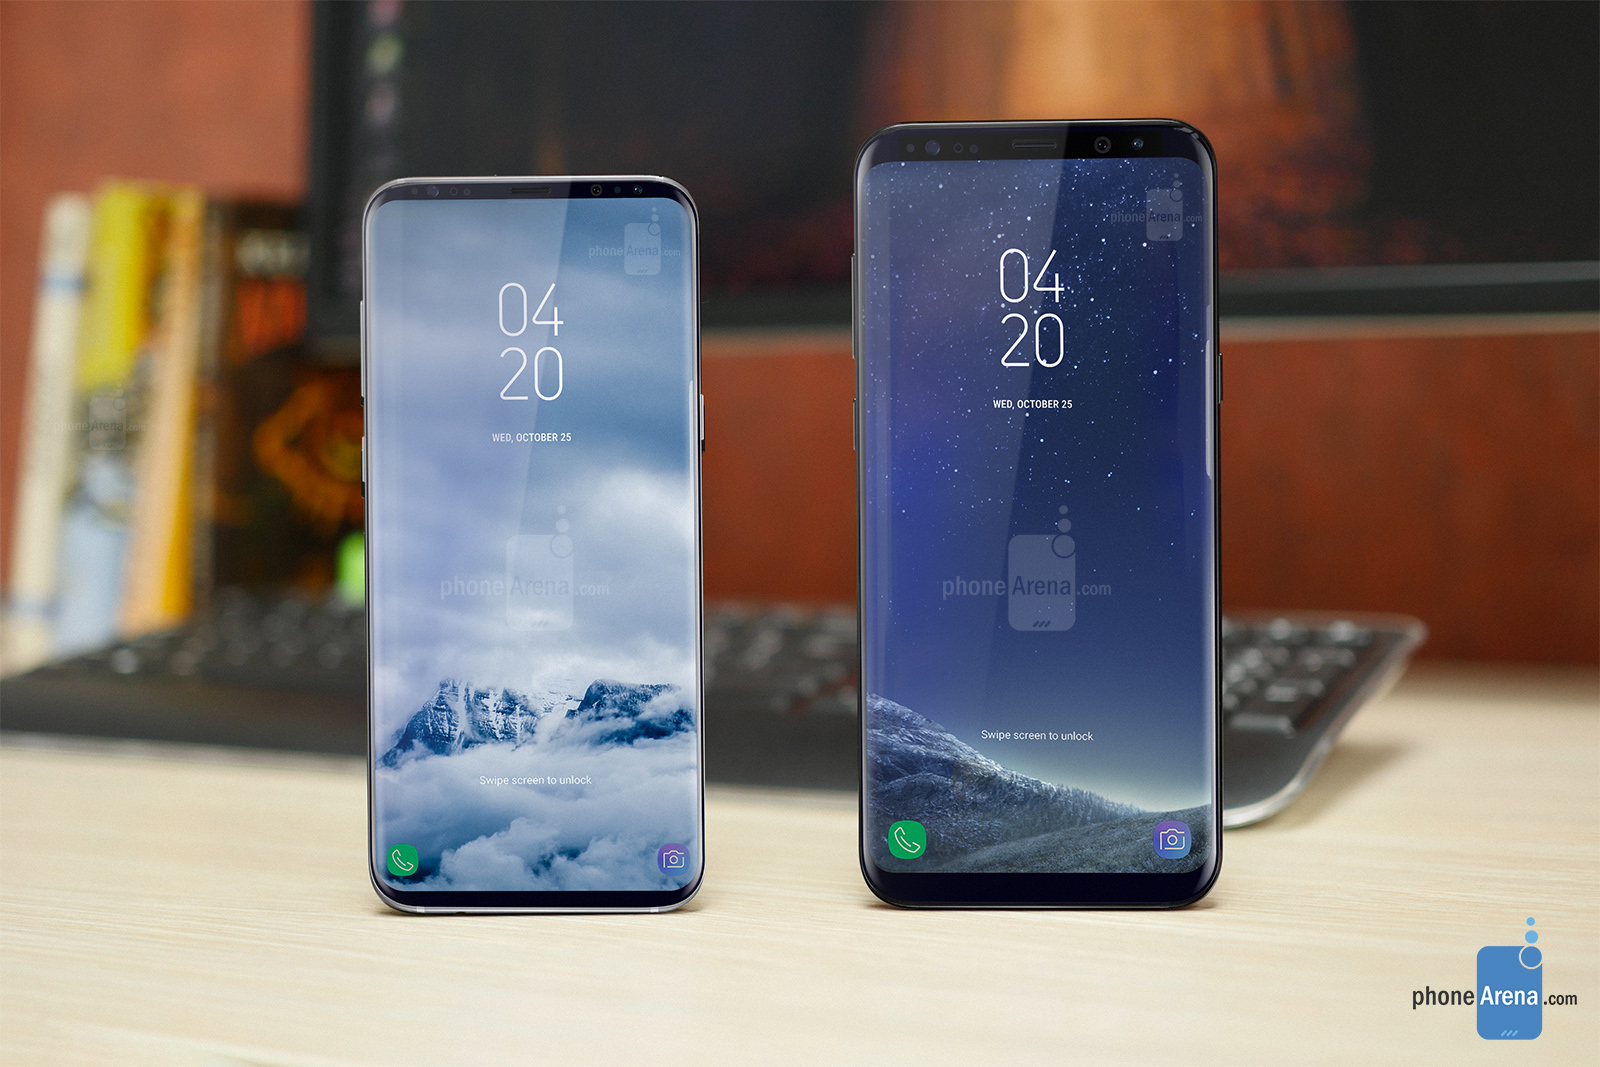 Galaxy-S9-concept-left-next-to-a-Galaxy-S8